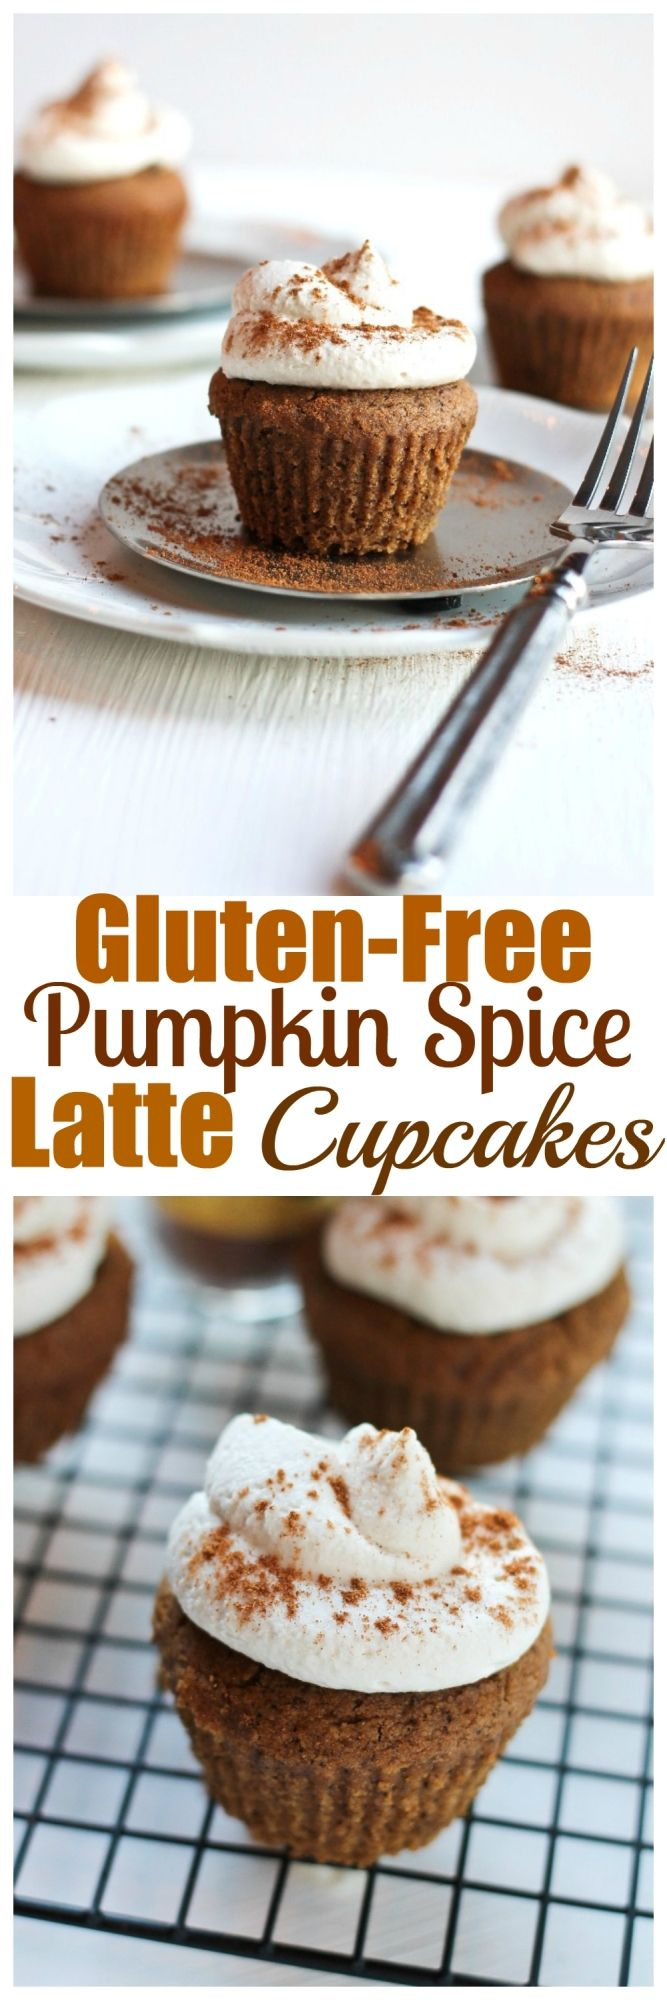 Gluten-free Pumpkin Spice Latte Cupcakes. Vegan, gluten-free, oil-free and grain-free. These are to die for and topped with coconut whipped icing.